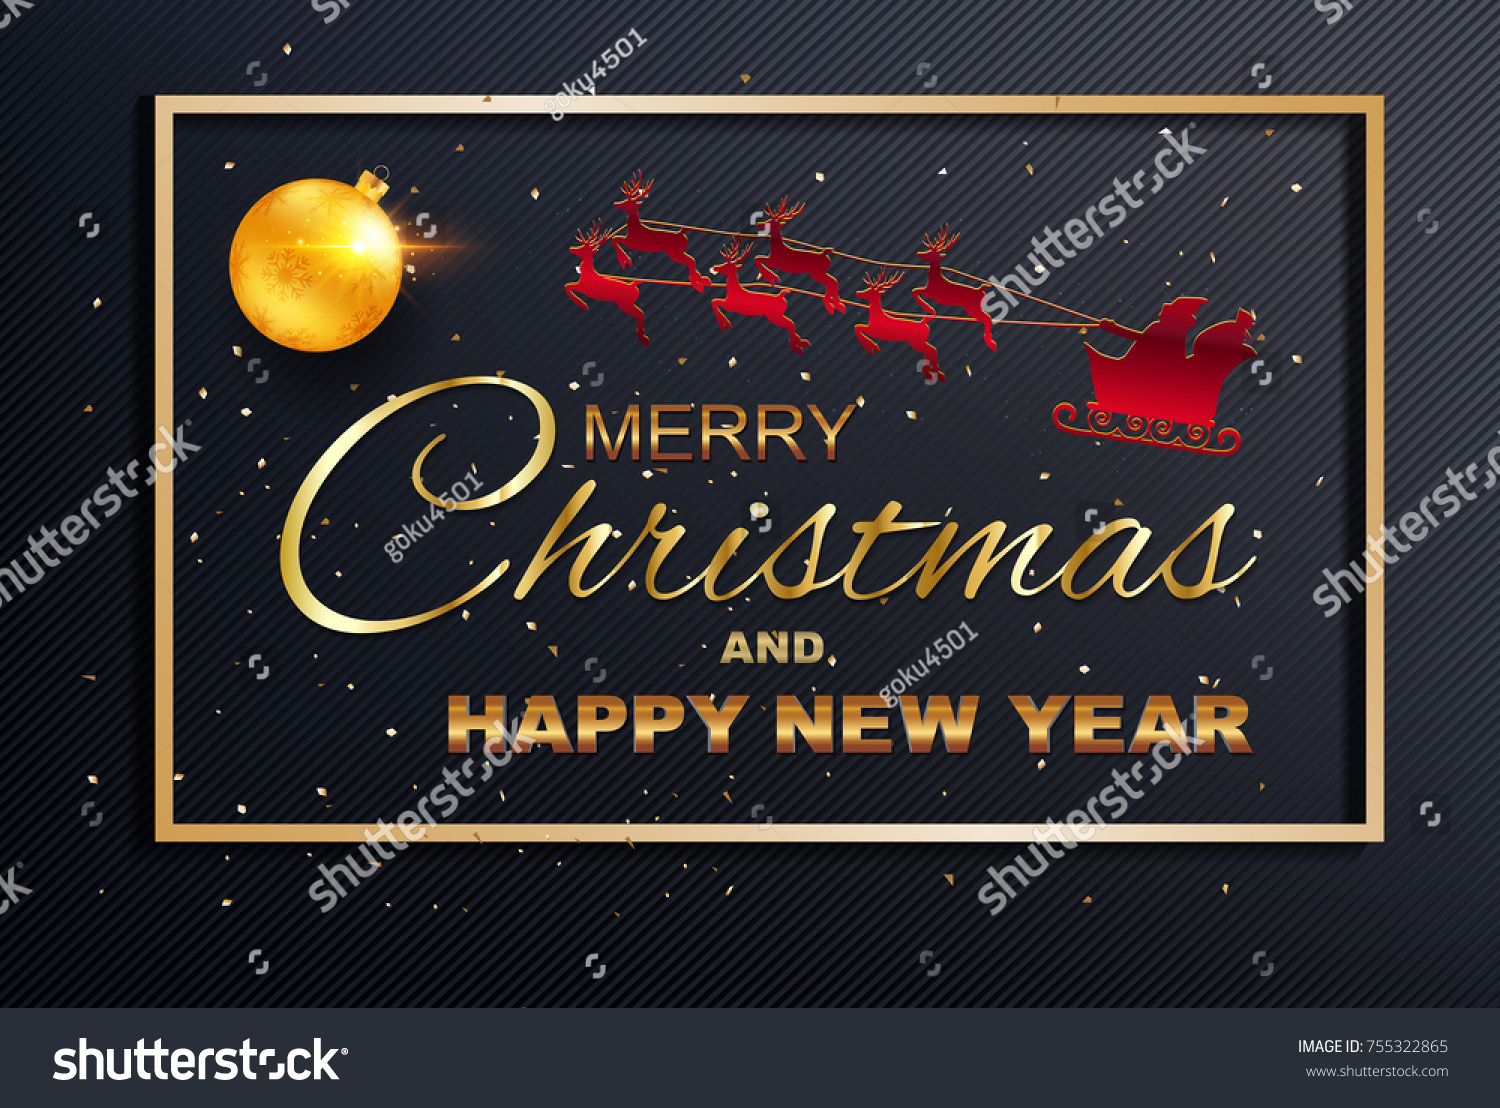 Merry christmas happy new year greeting stock vector 755322865 merry christmas and happy new year greeting card colored text design on background texture kristyandbryce Image collections